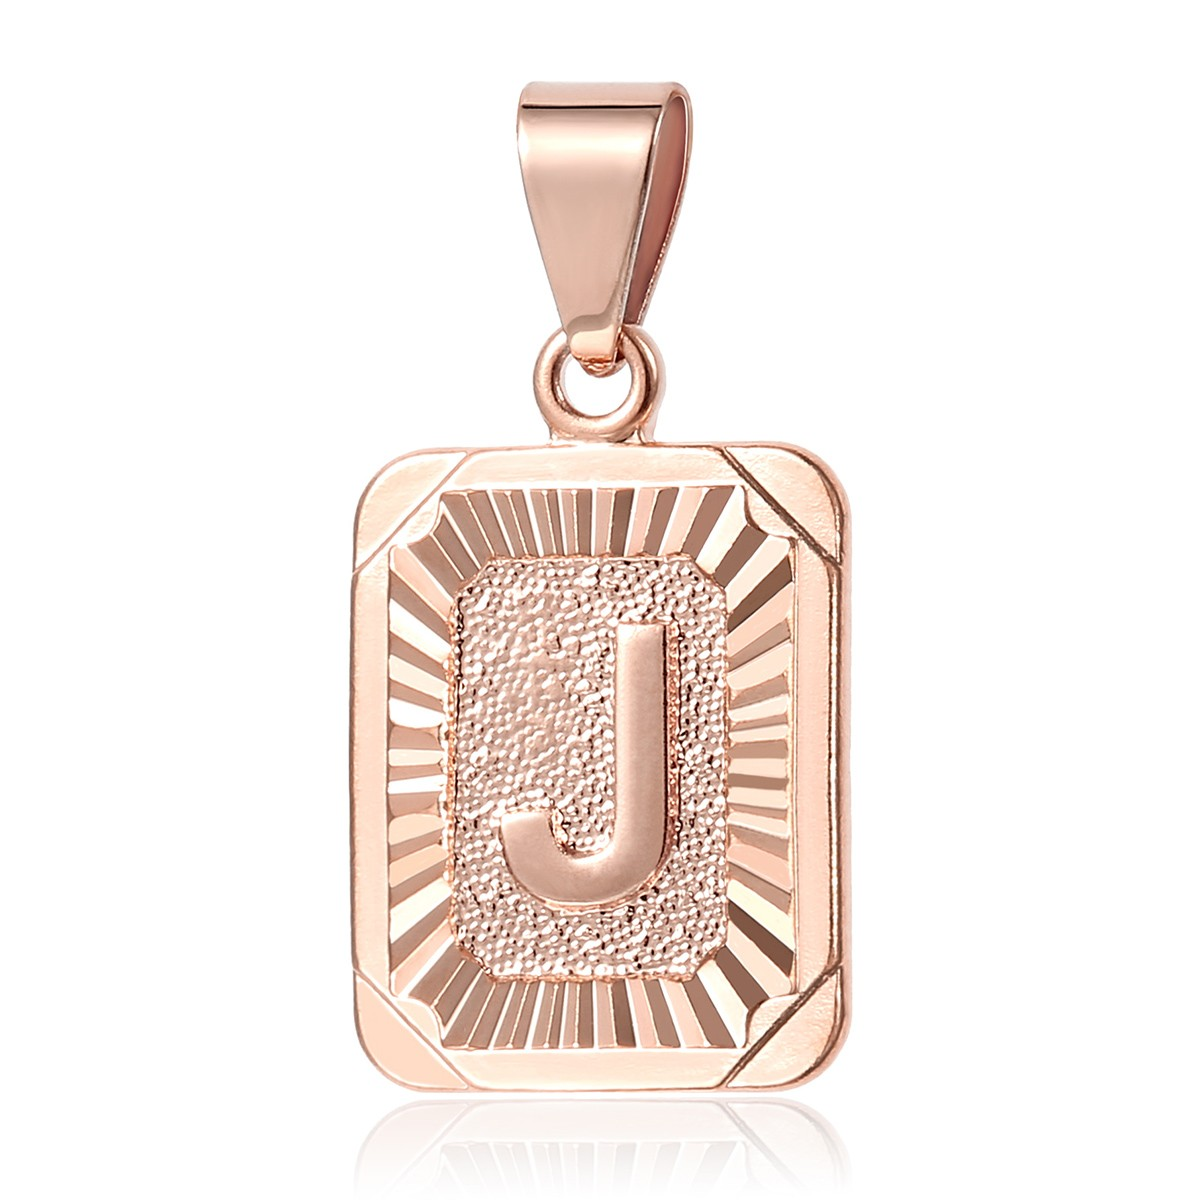 Trendsmax Square Capital Initial Letter A-Z Charm Pendant Necklace for Men Women Chain Rose Gold Filled Box Link bpRP65ytG1